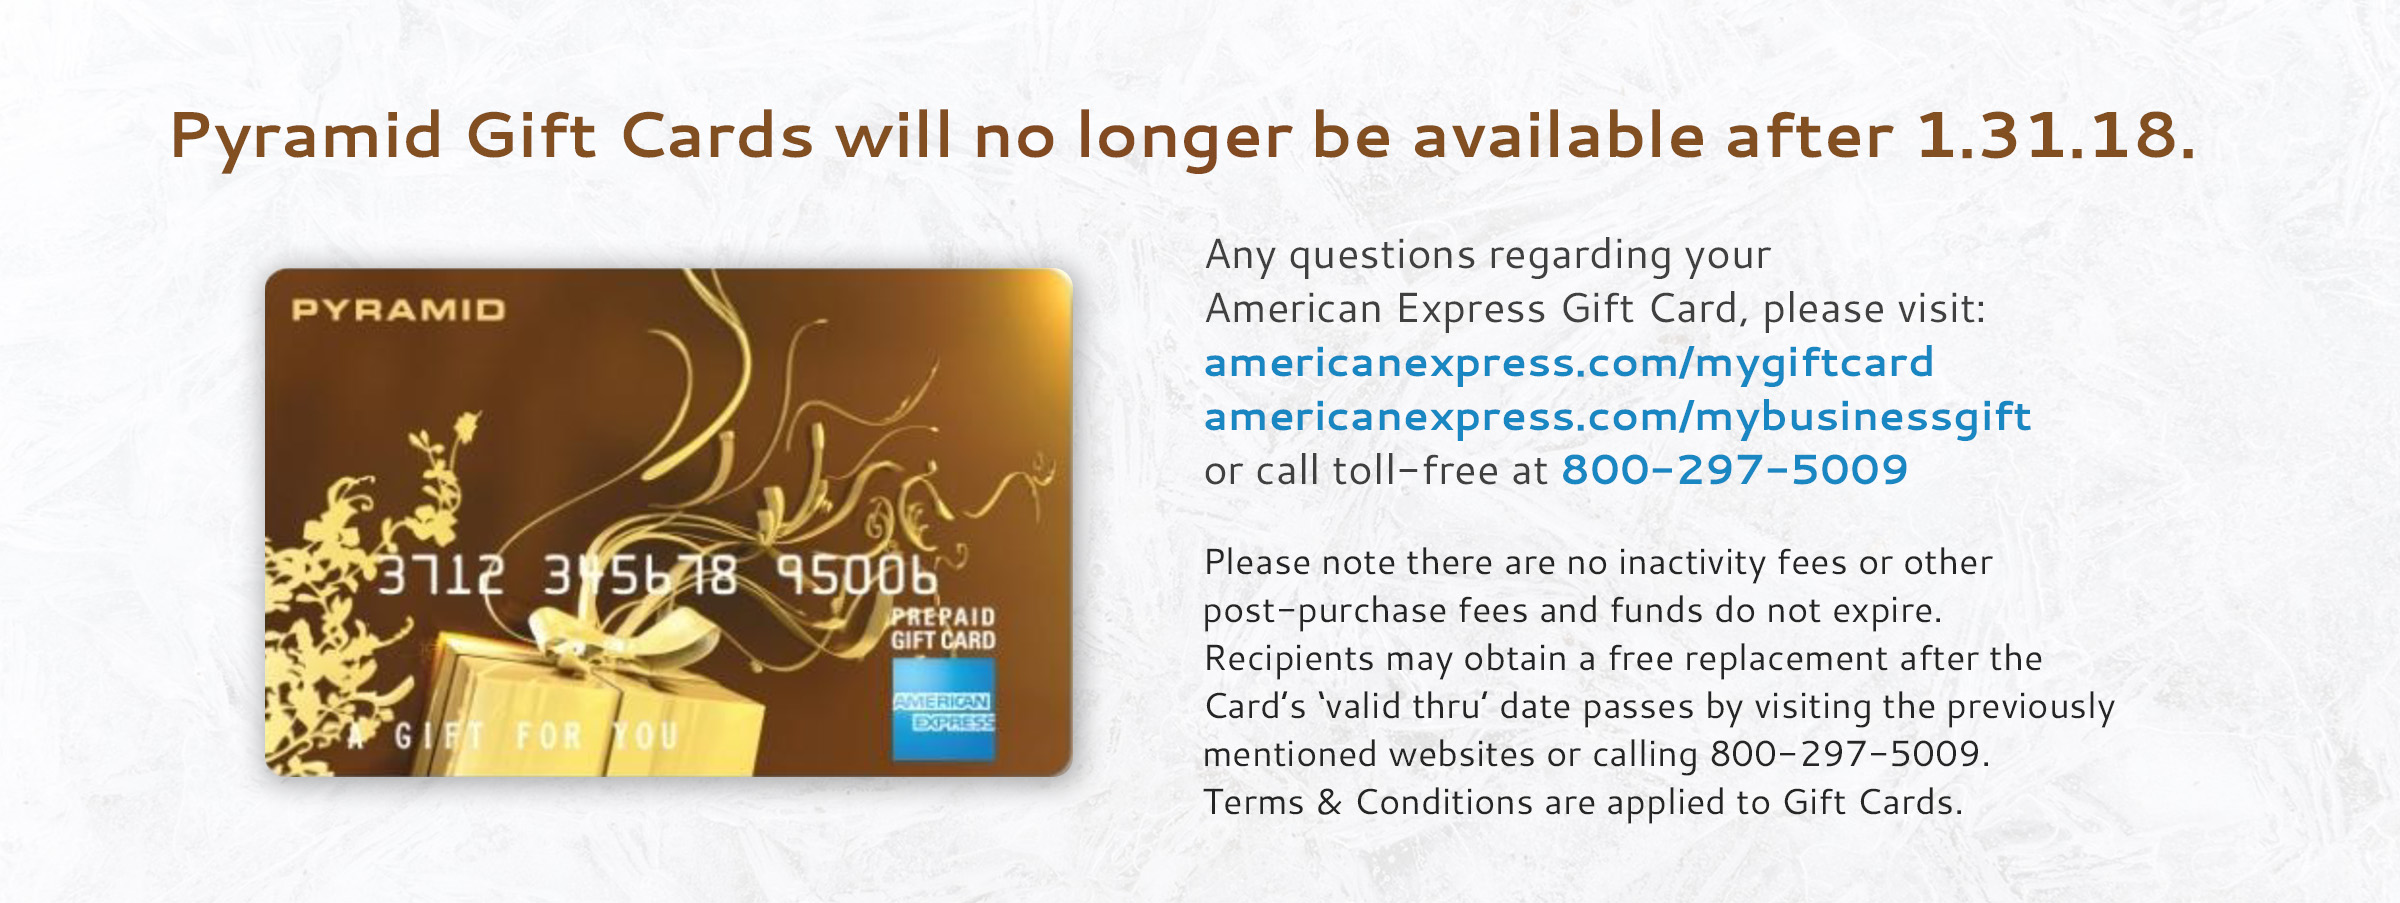 giftcardannouncement